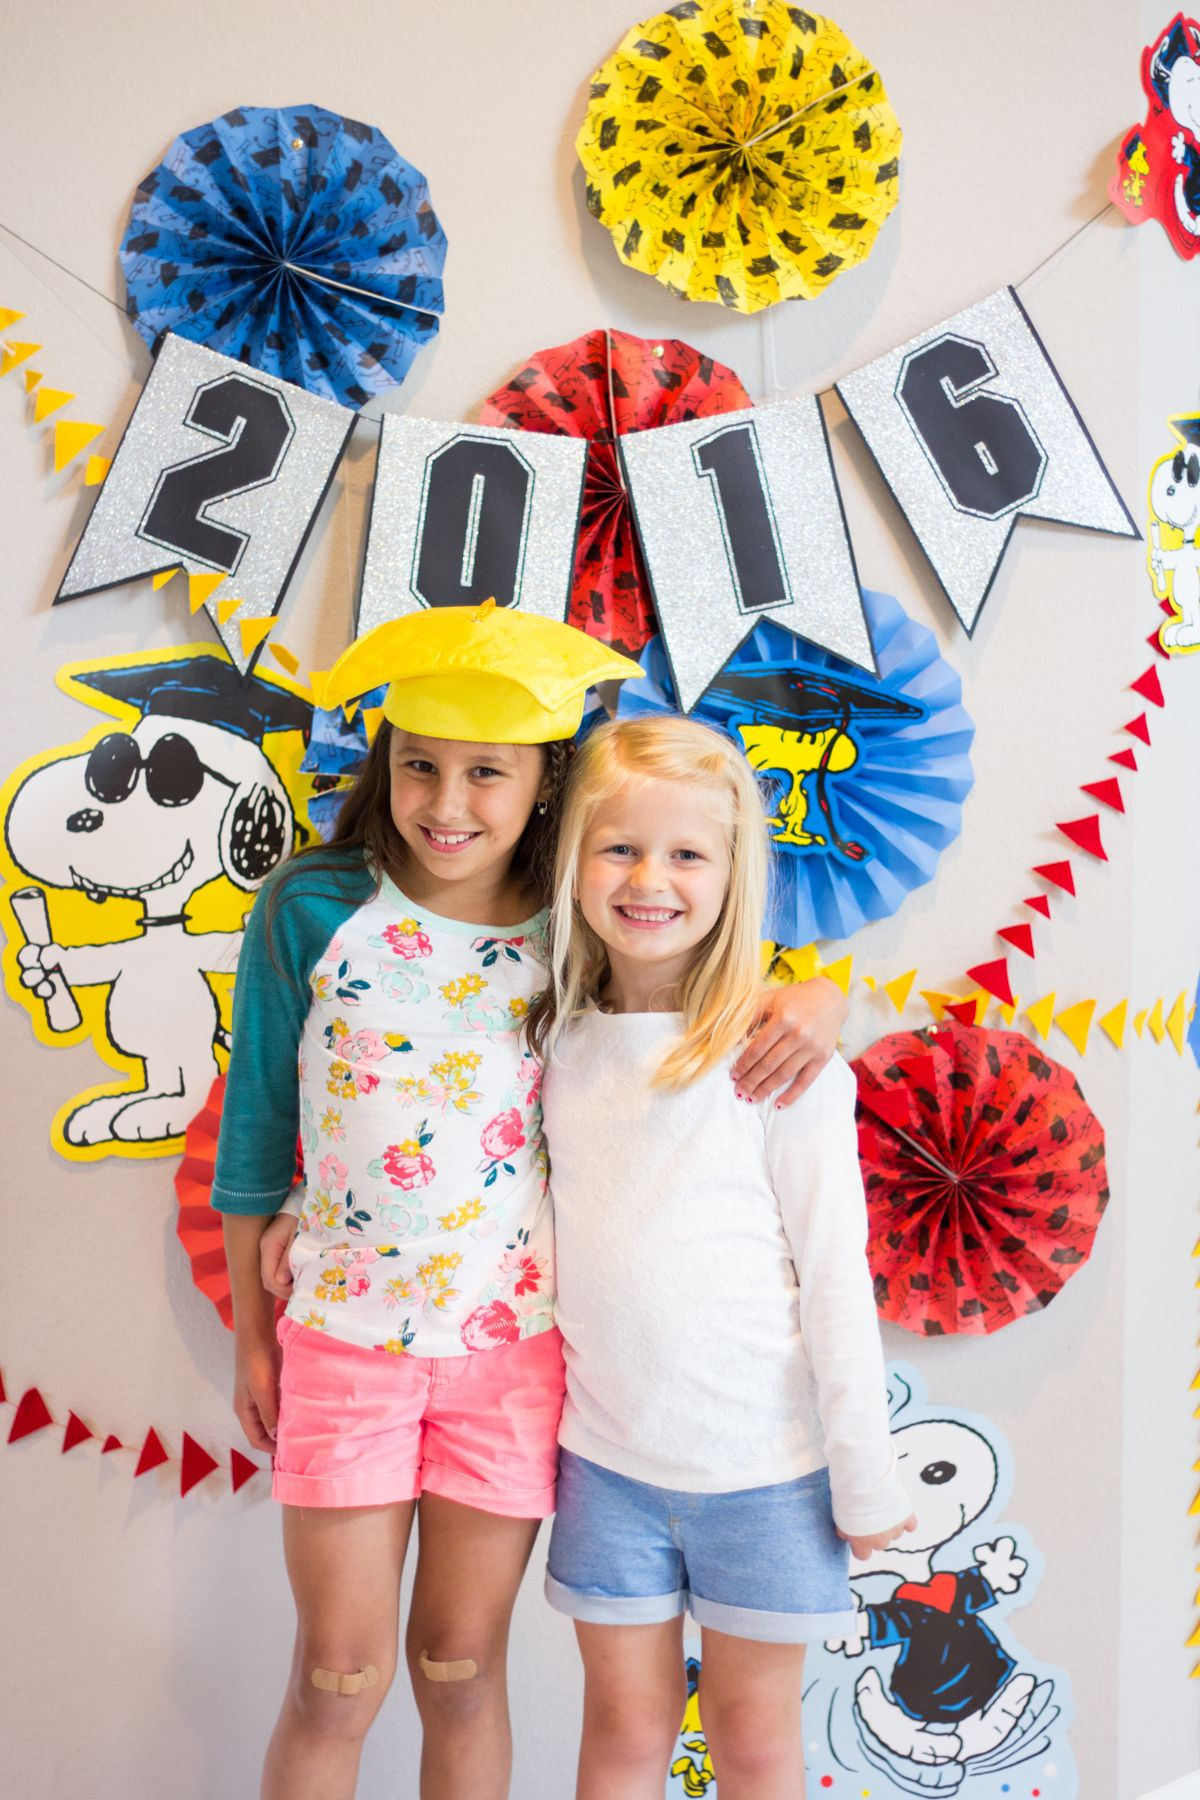 Peanuts Graduation Party Photo Backdrop Idea